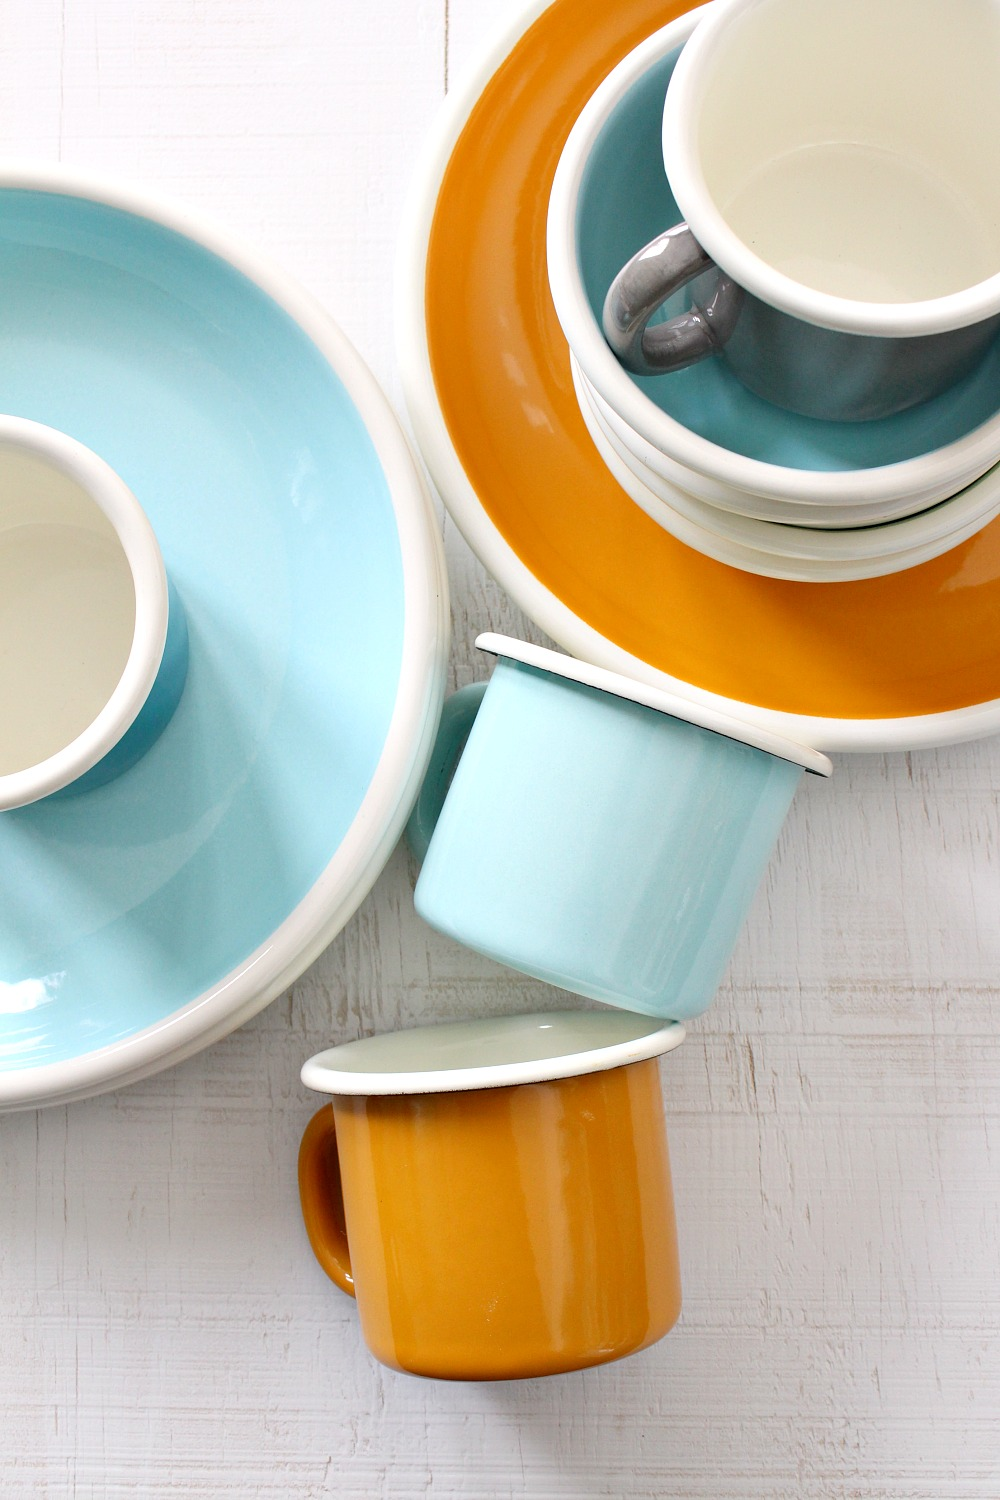 Retro Enamel Mugs and Plates